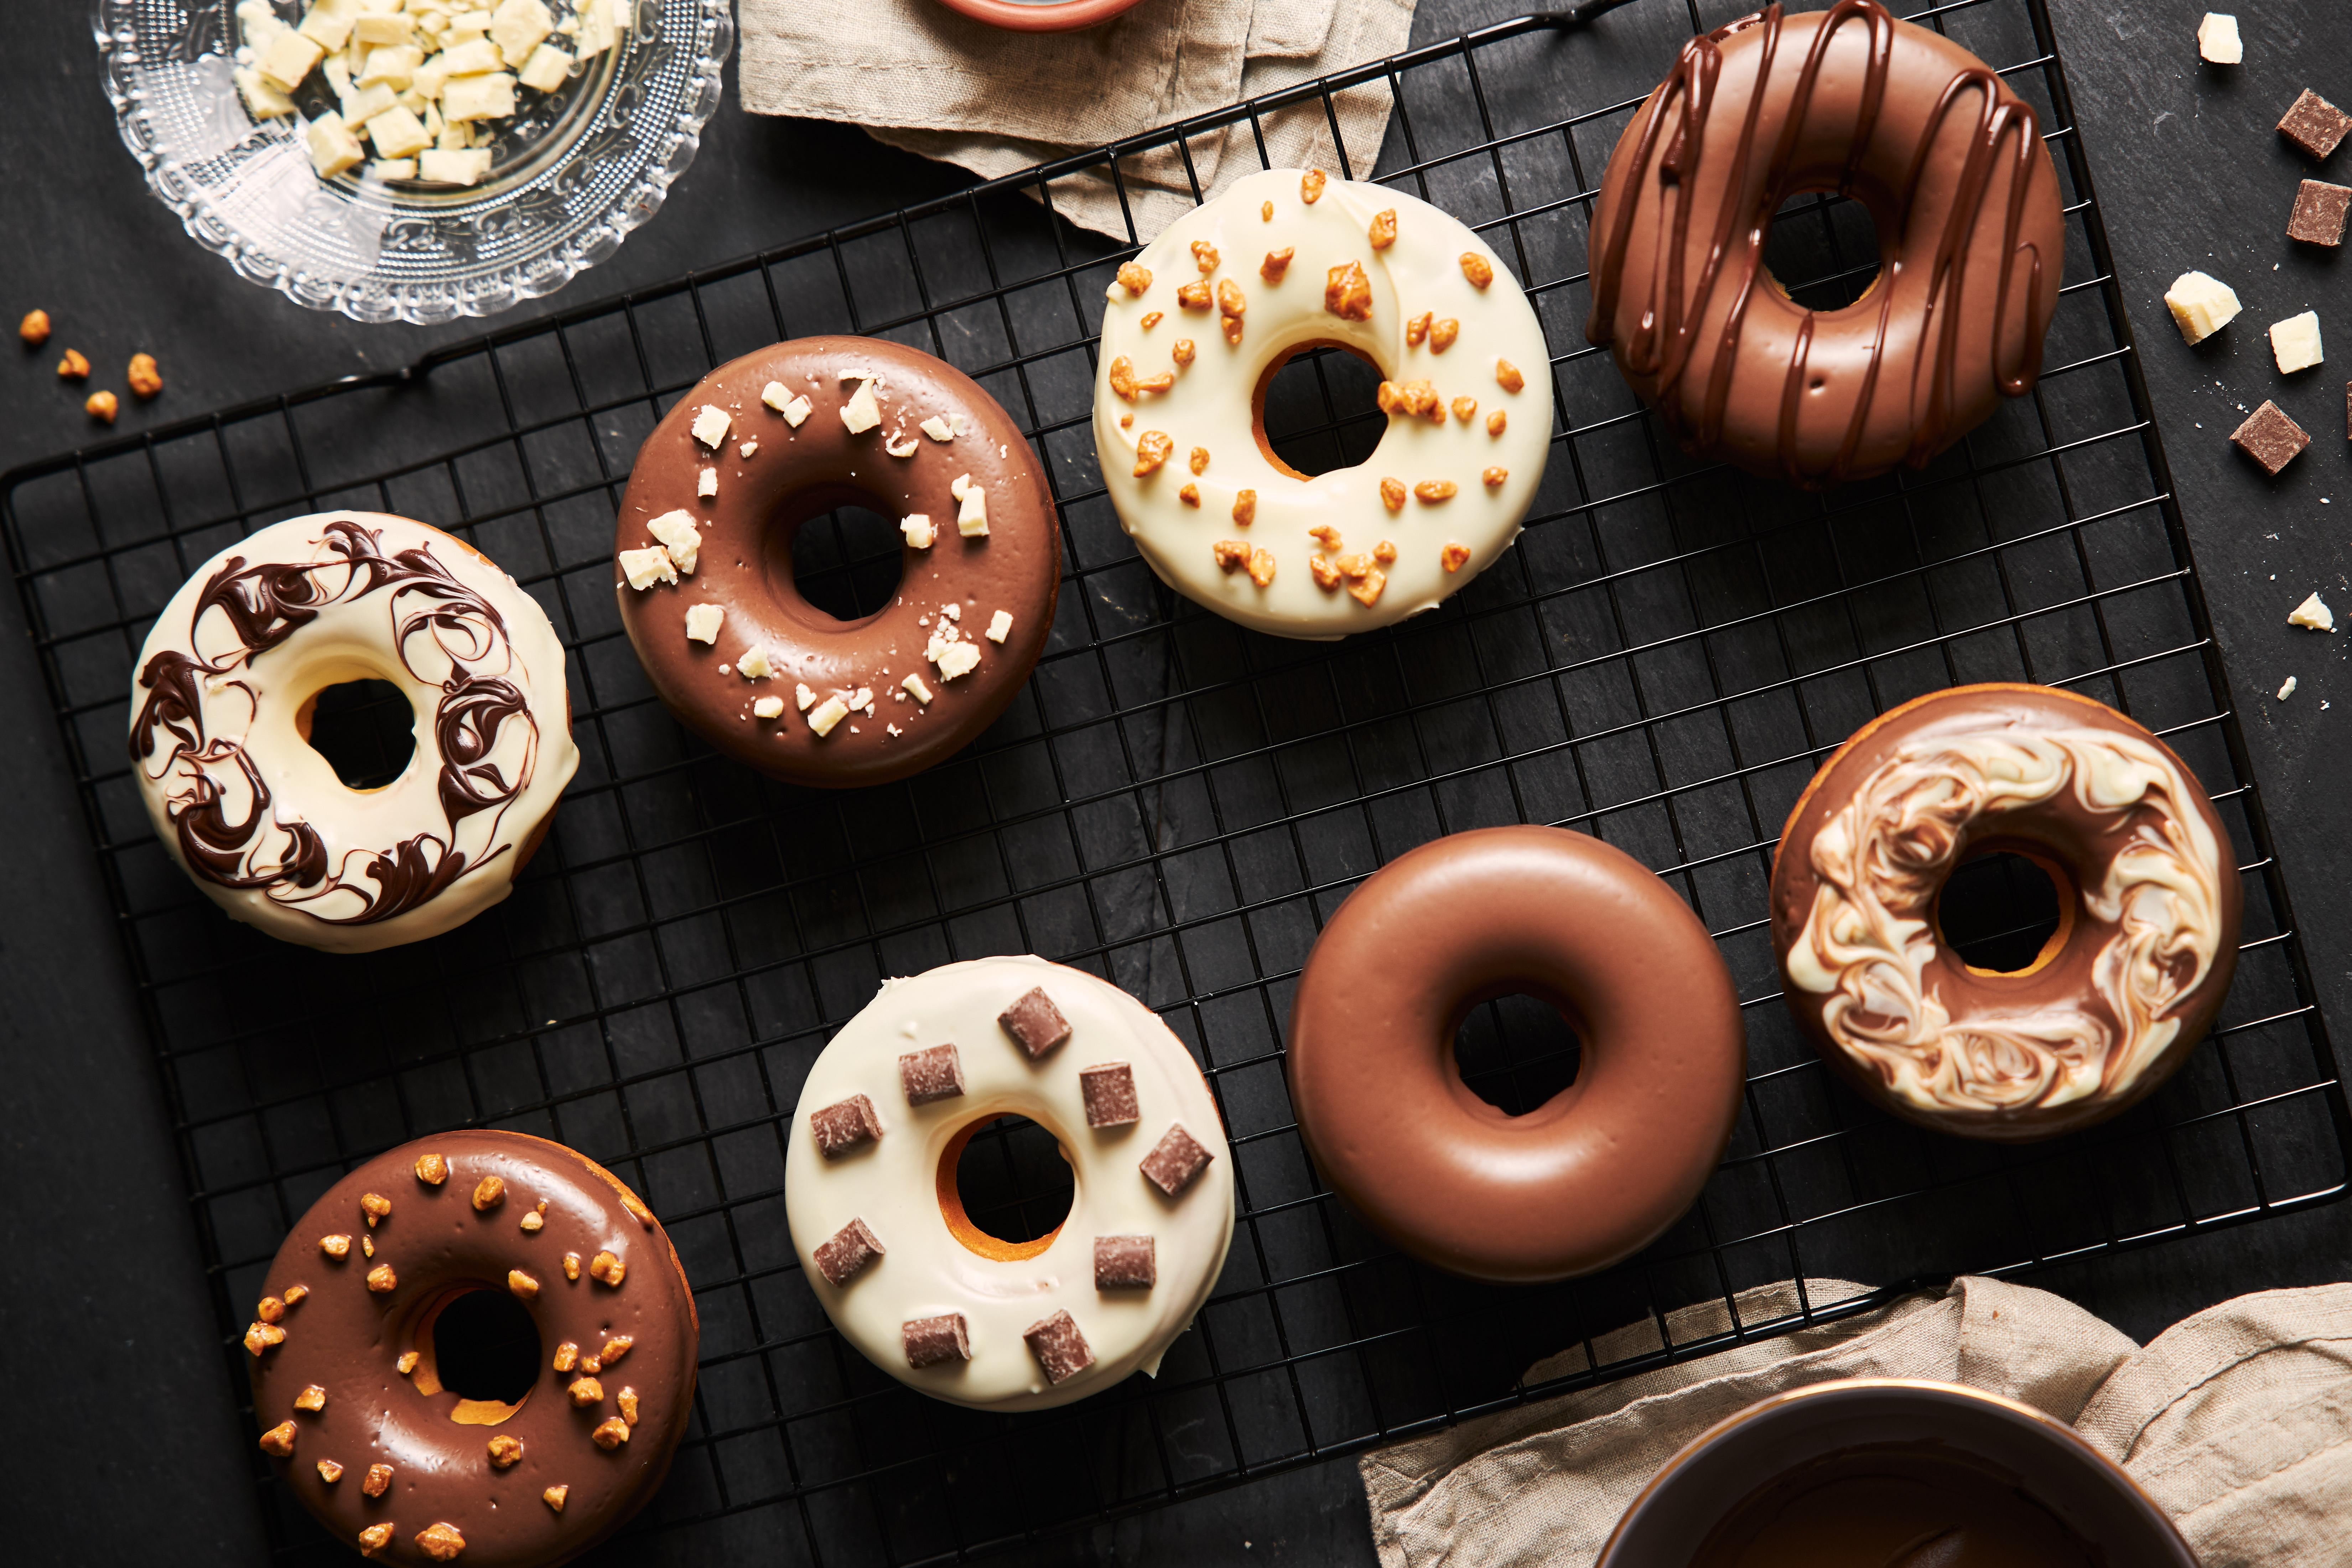 Various donuts glazed in white and milk chocolate